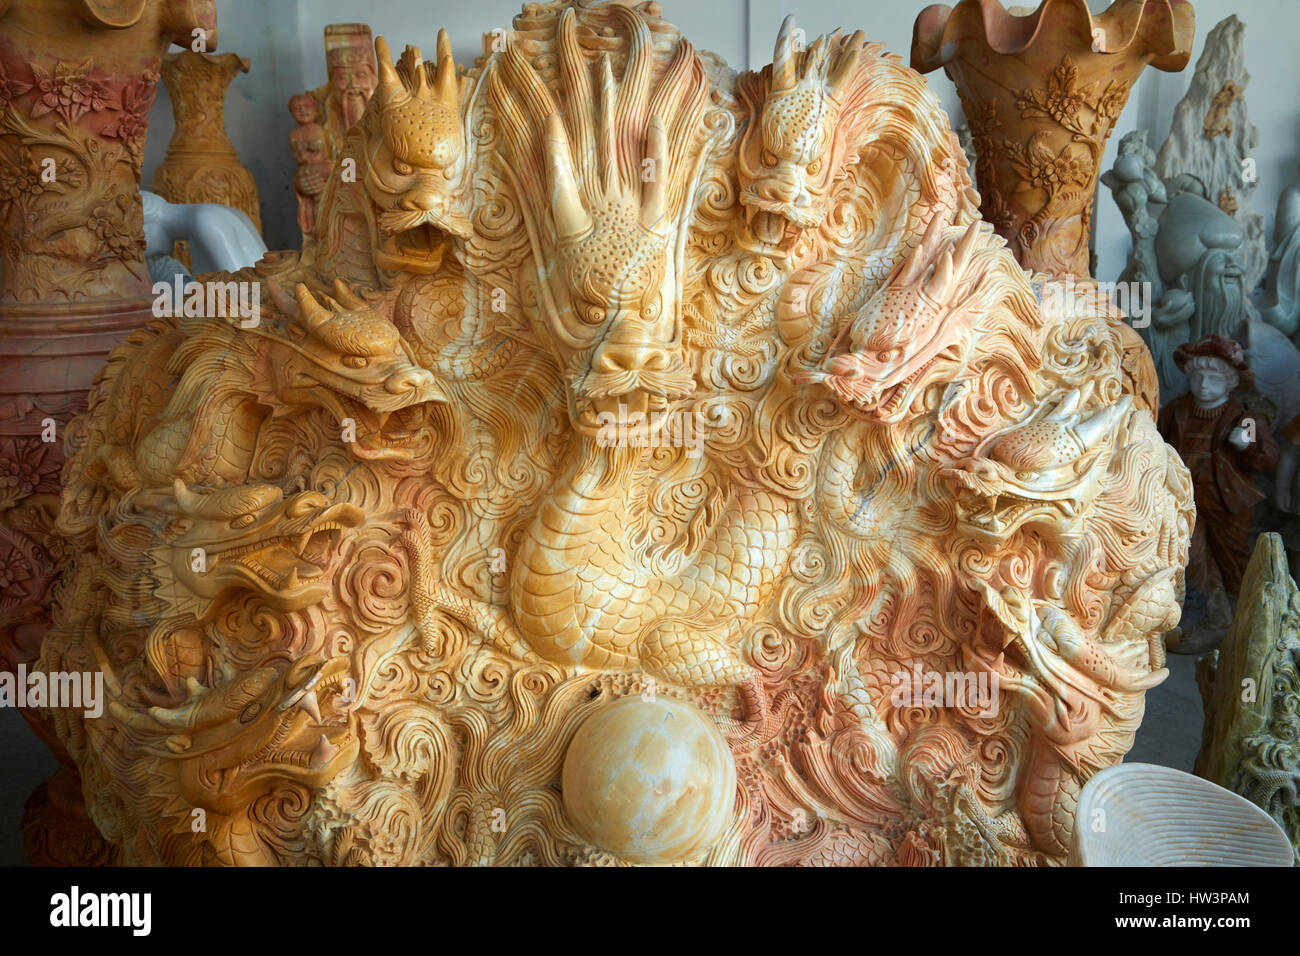 Hand crafted marble dragon sculpture at tourist shop, Marble Mountains, Da Nang, Vietnam - Stock Image